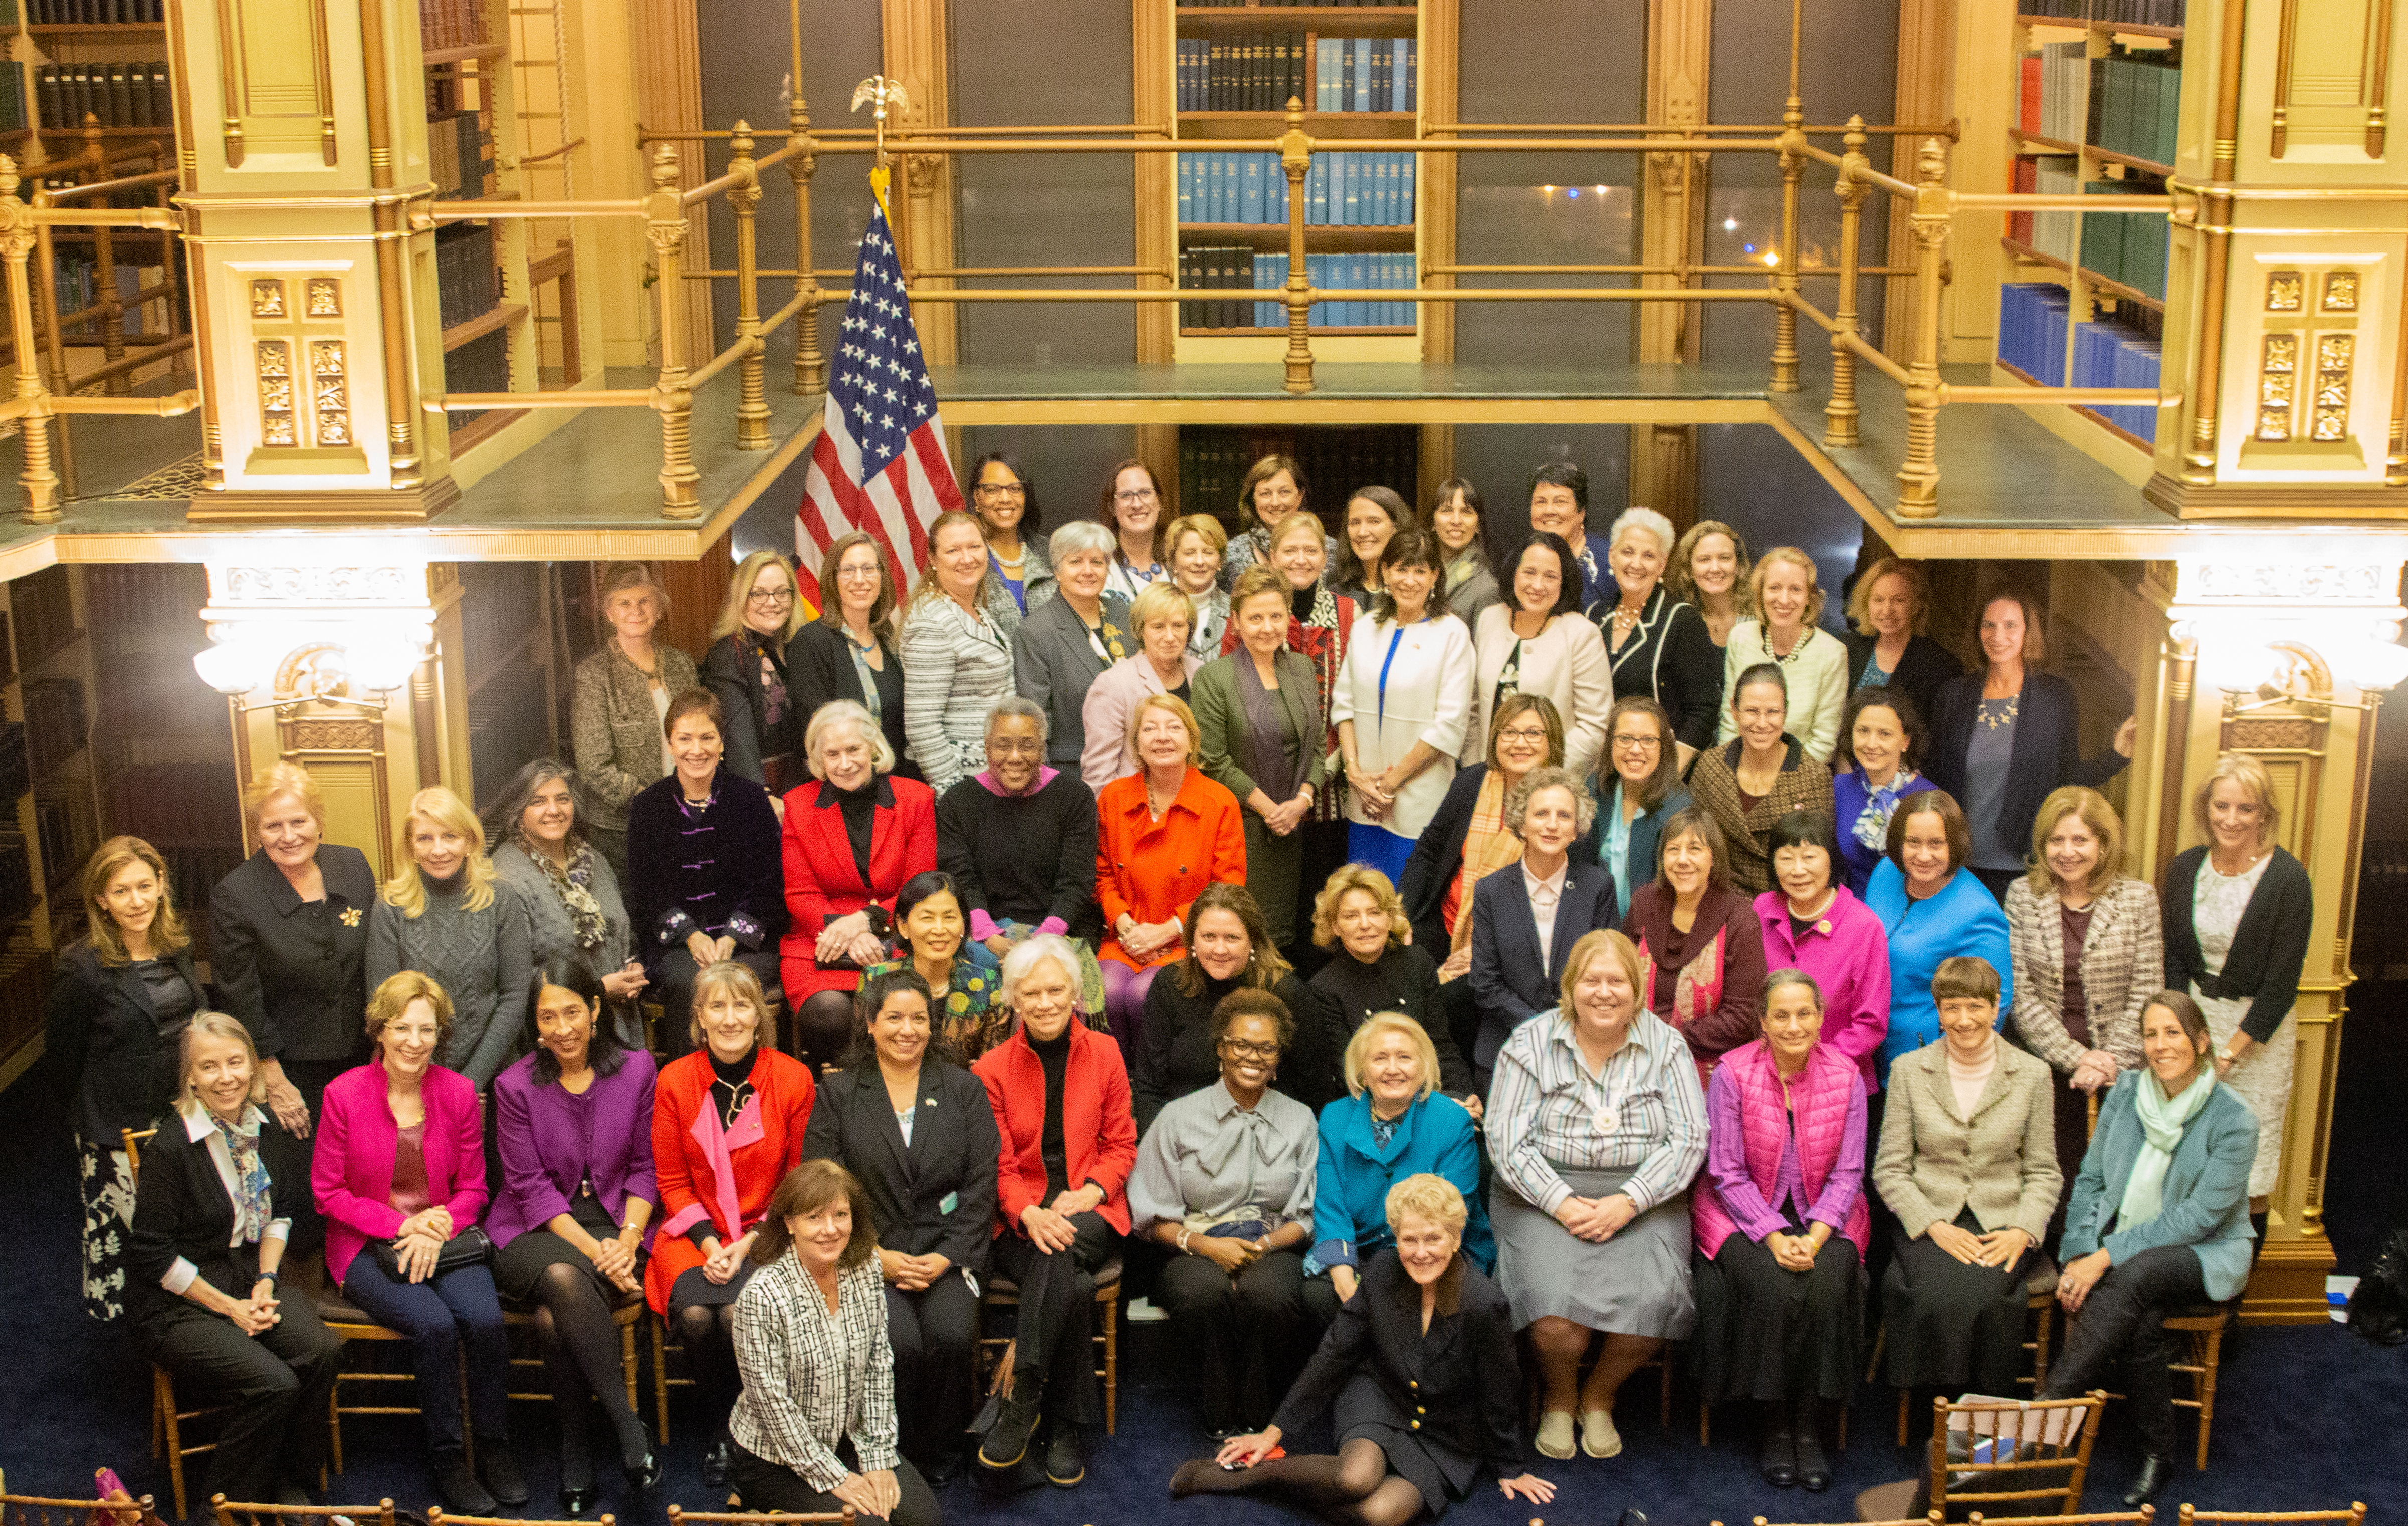 Women ambassadors gather at Georgetown